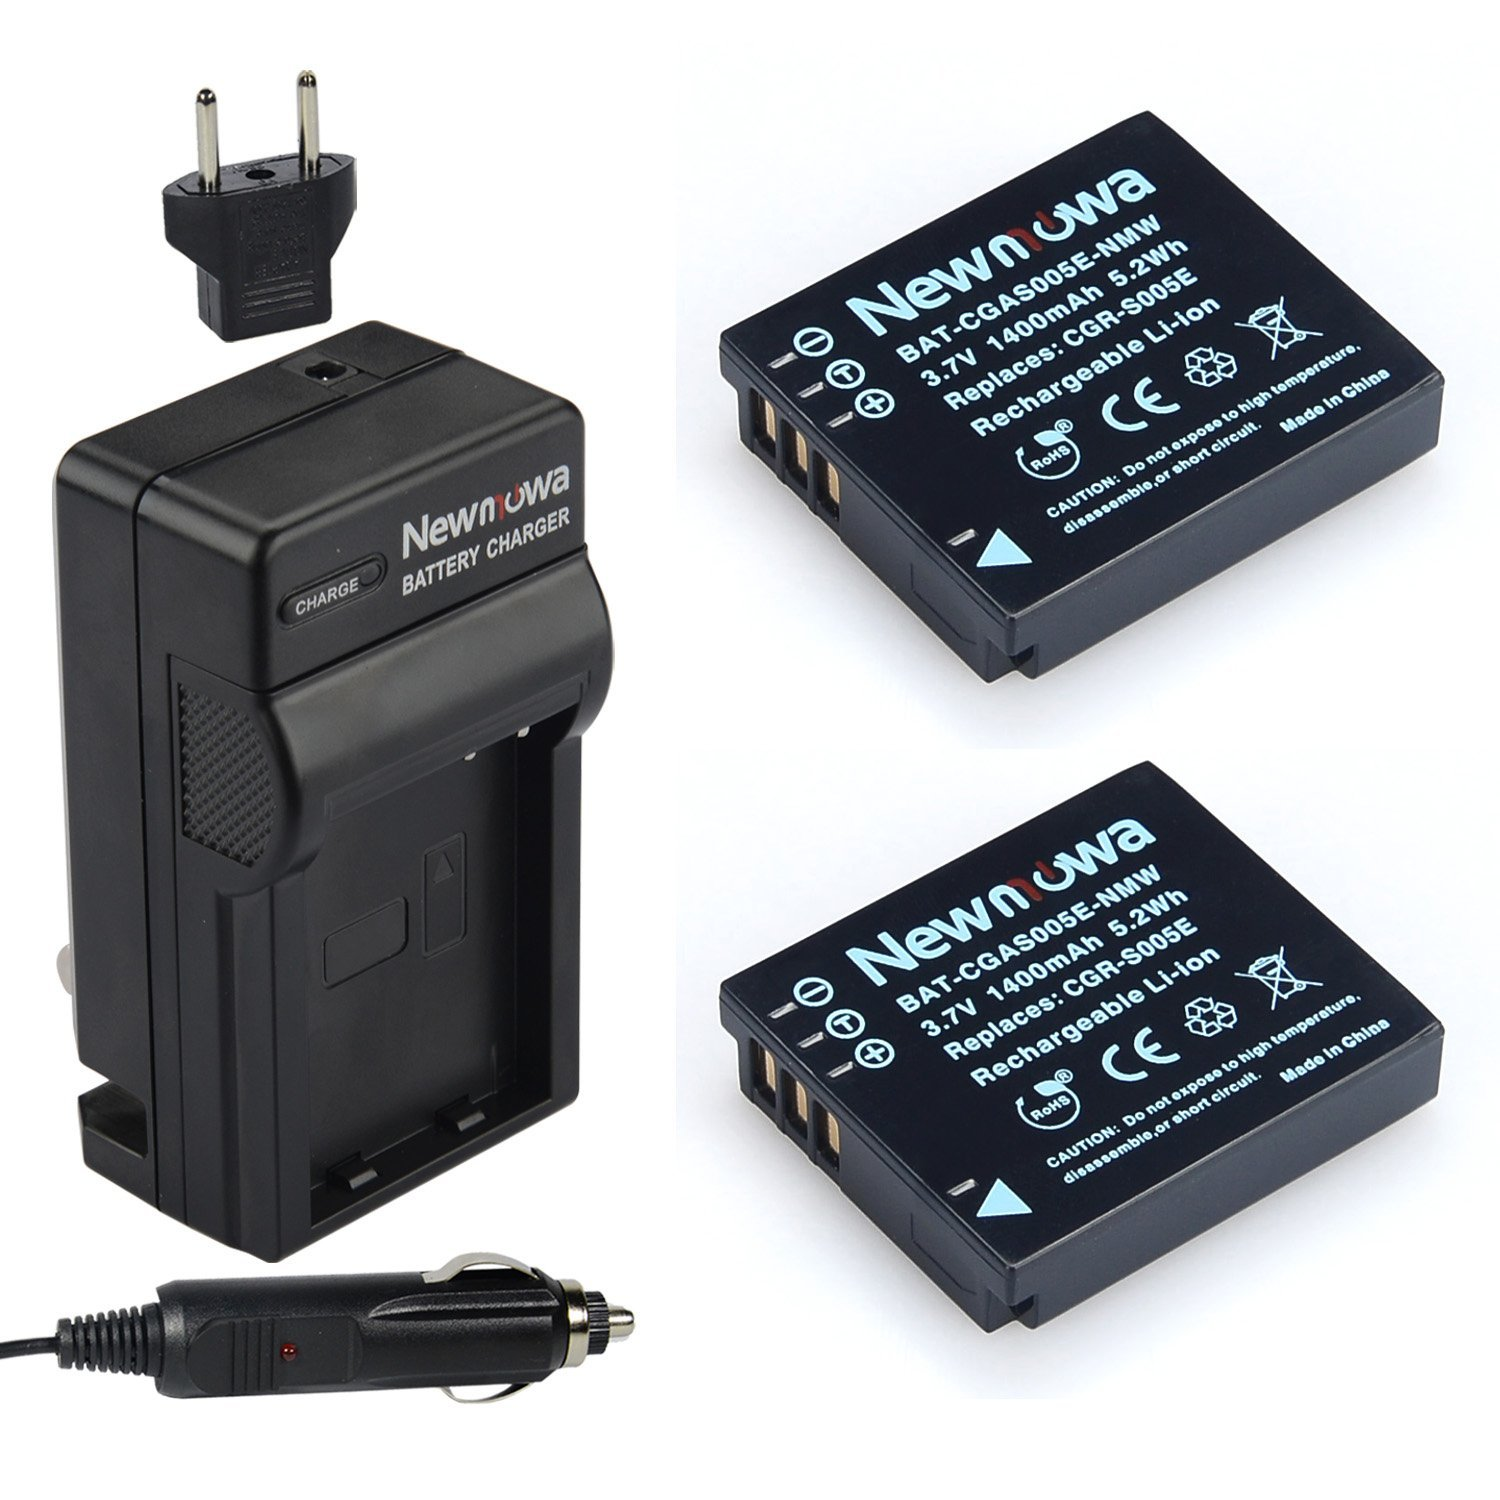 Newmowa S005 Battery (2-Pack) and Charger kit for Panasonic CGA-S005 / CGA-S005E Replacement Battery Compatible with Panasonic Lumix DMC-LX1 / DMC-LX2 / DMC-LX3 and Ricoh WG-M1 Digital Camera